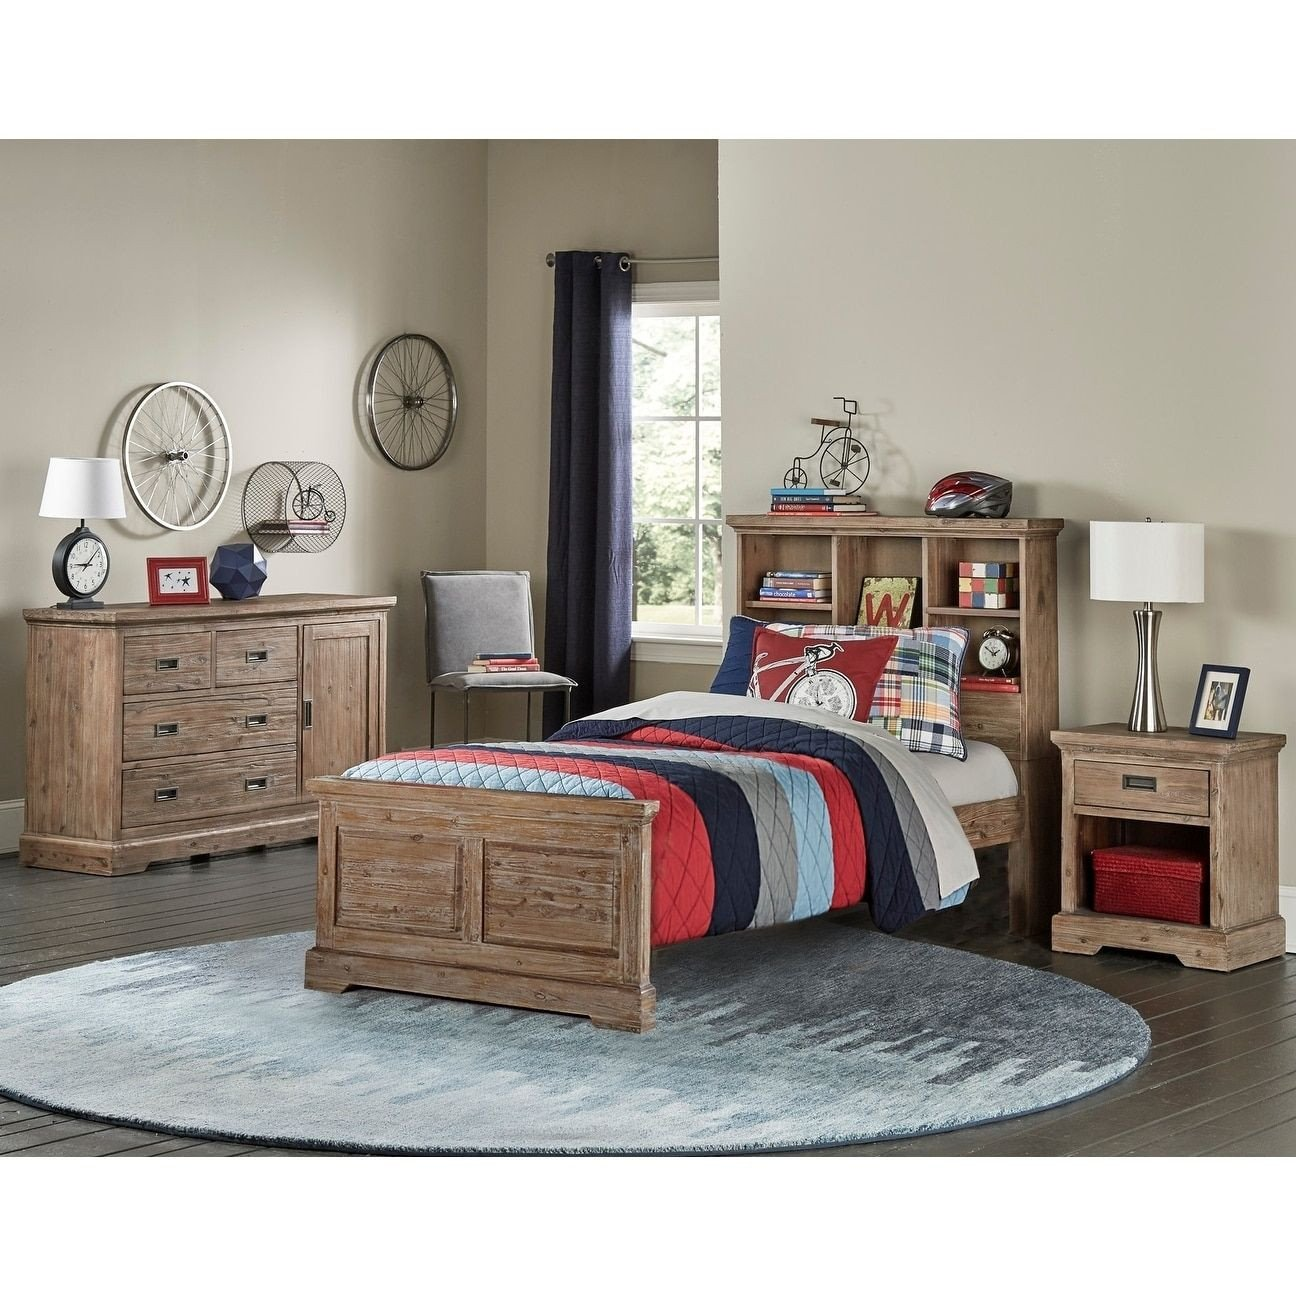 Kids Full Bedroom Set Beautiful Line Shopping Bedding Furniture Electronics Jewelry